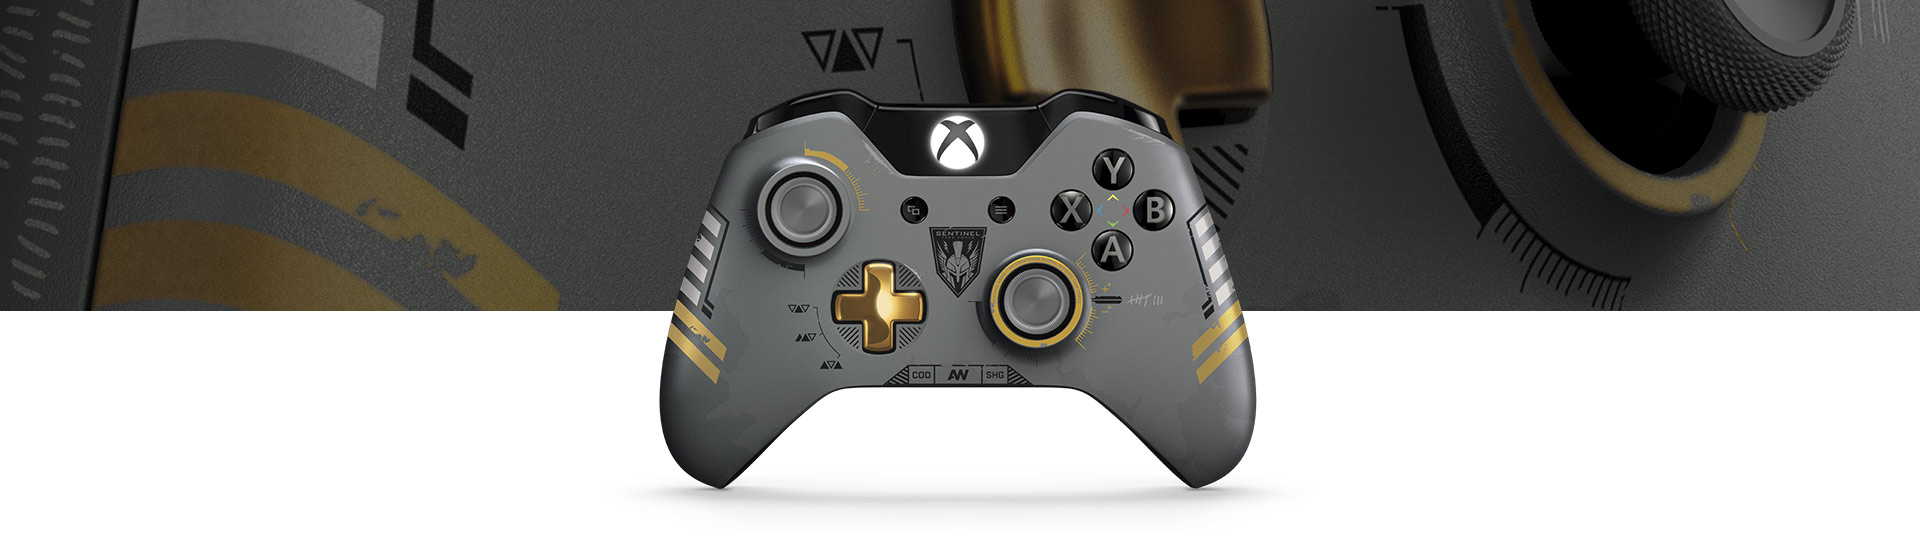 Mando de Call of Duty Advanced Warfare